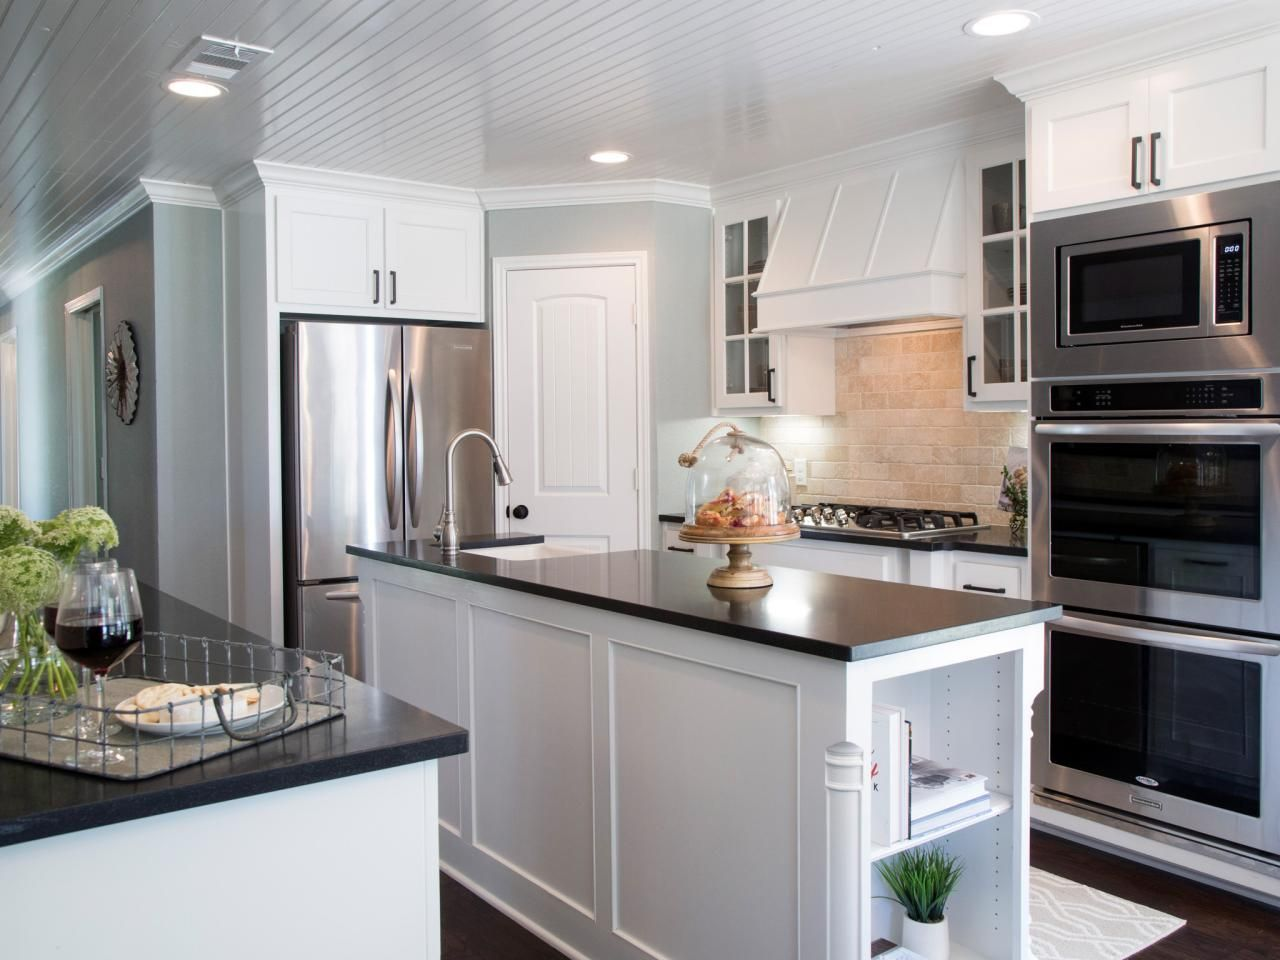 Kitchen Makeover Ideas From Fixer Upper | Laminate countertops ... on fixer upper style, fixer upper renovation, rental kitchen ideas, fixer upper cabinets, fixer upper flooring, fixer upper living rooms, fixer upper decorating, fixer upper bedrooms, fixer upper color, waterfront kitchen ideas, fixer upper doors, fixer upper kitchen makeovers, fixer upper garden, fixer upper decor, fixer upper kitchen counter, fixer upper kitchen islands, handicap accessible kitchen ideas, fixer upper dining room, fixer upper diy, fixer upper kitchen backsplash,